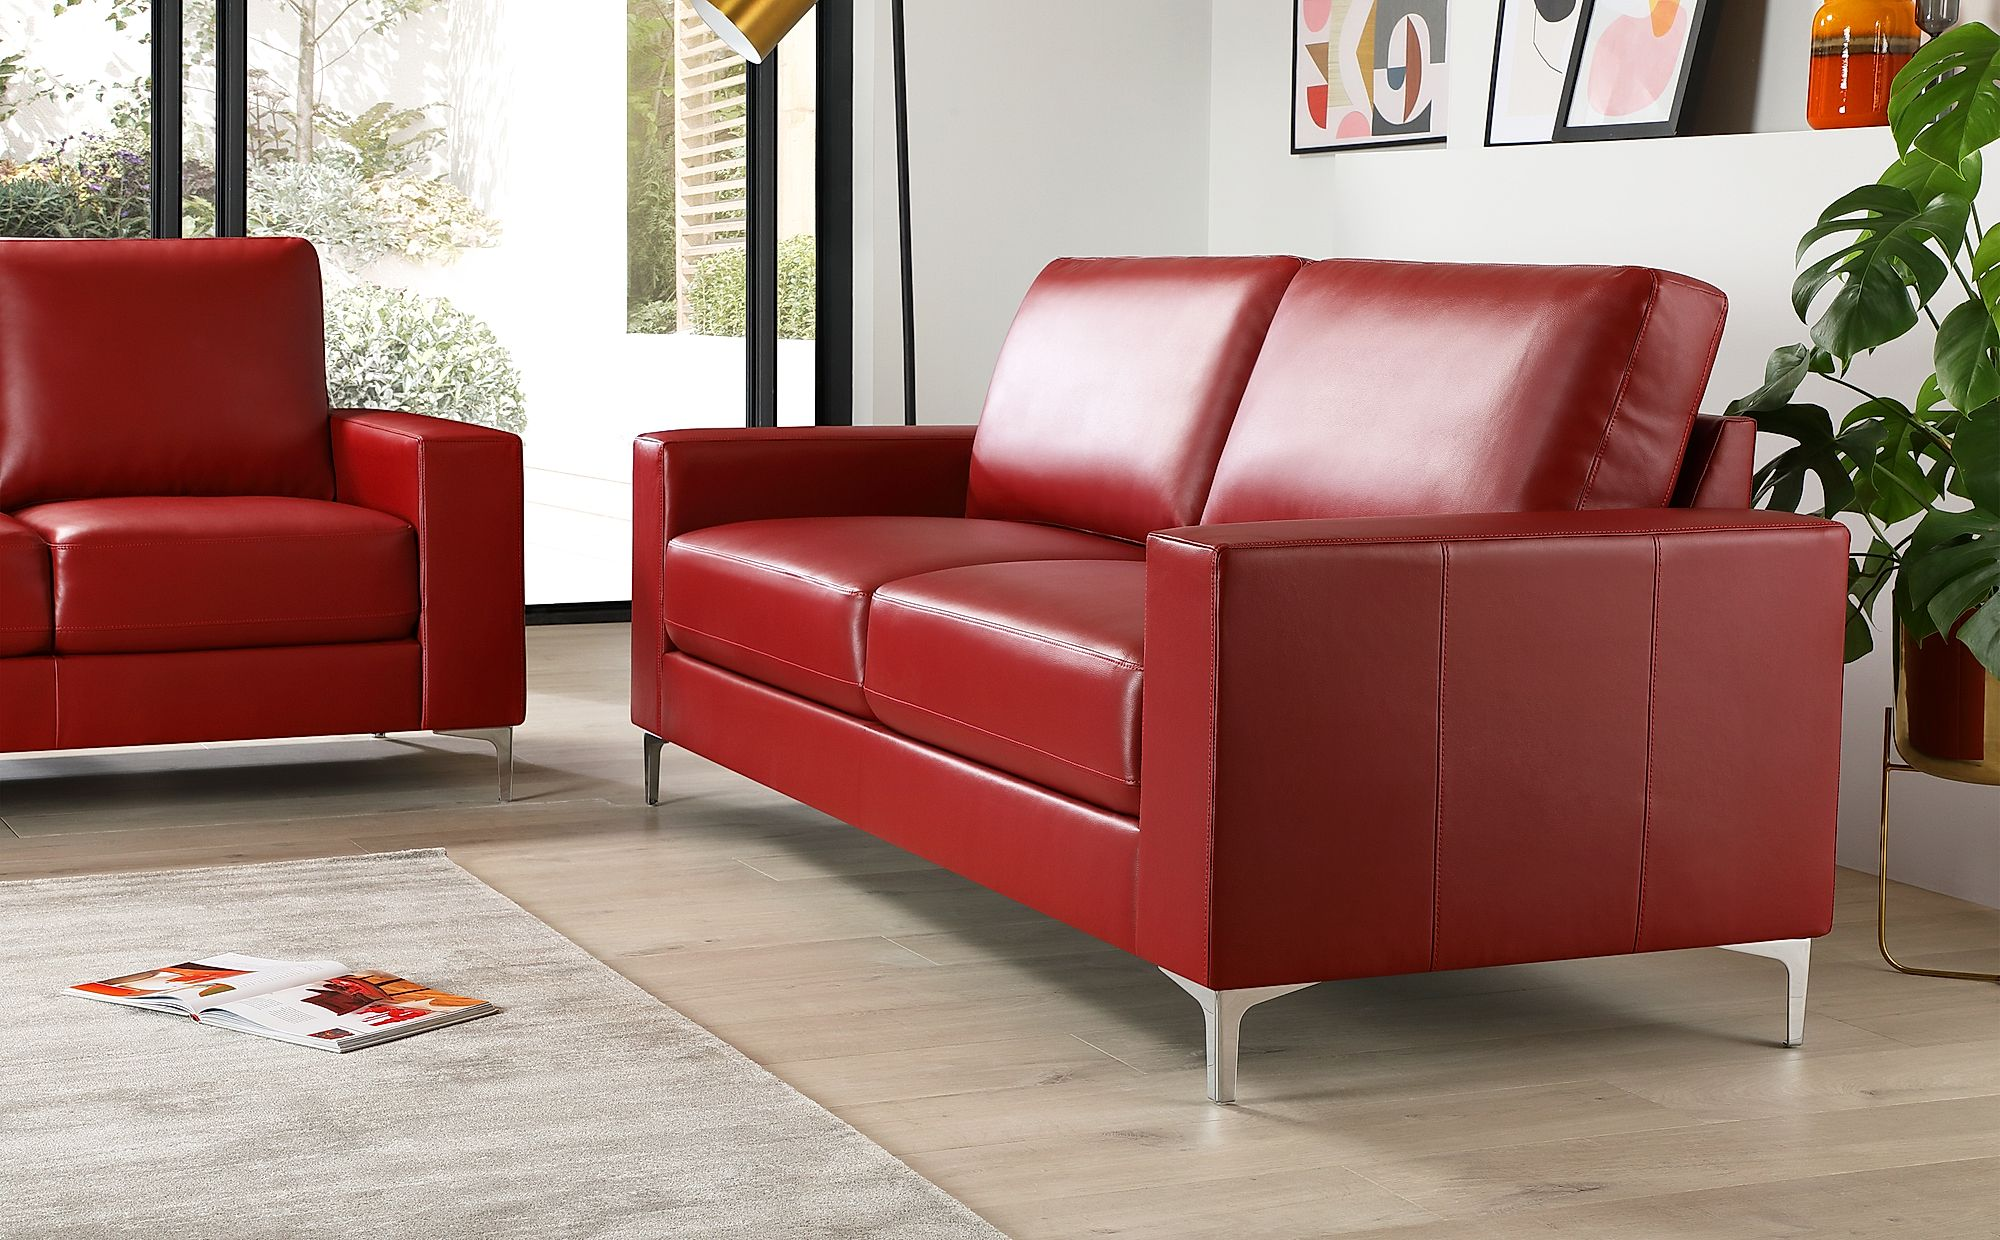 Baltimore Red Leather 3 Seater Sofa